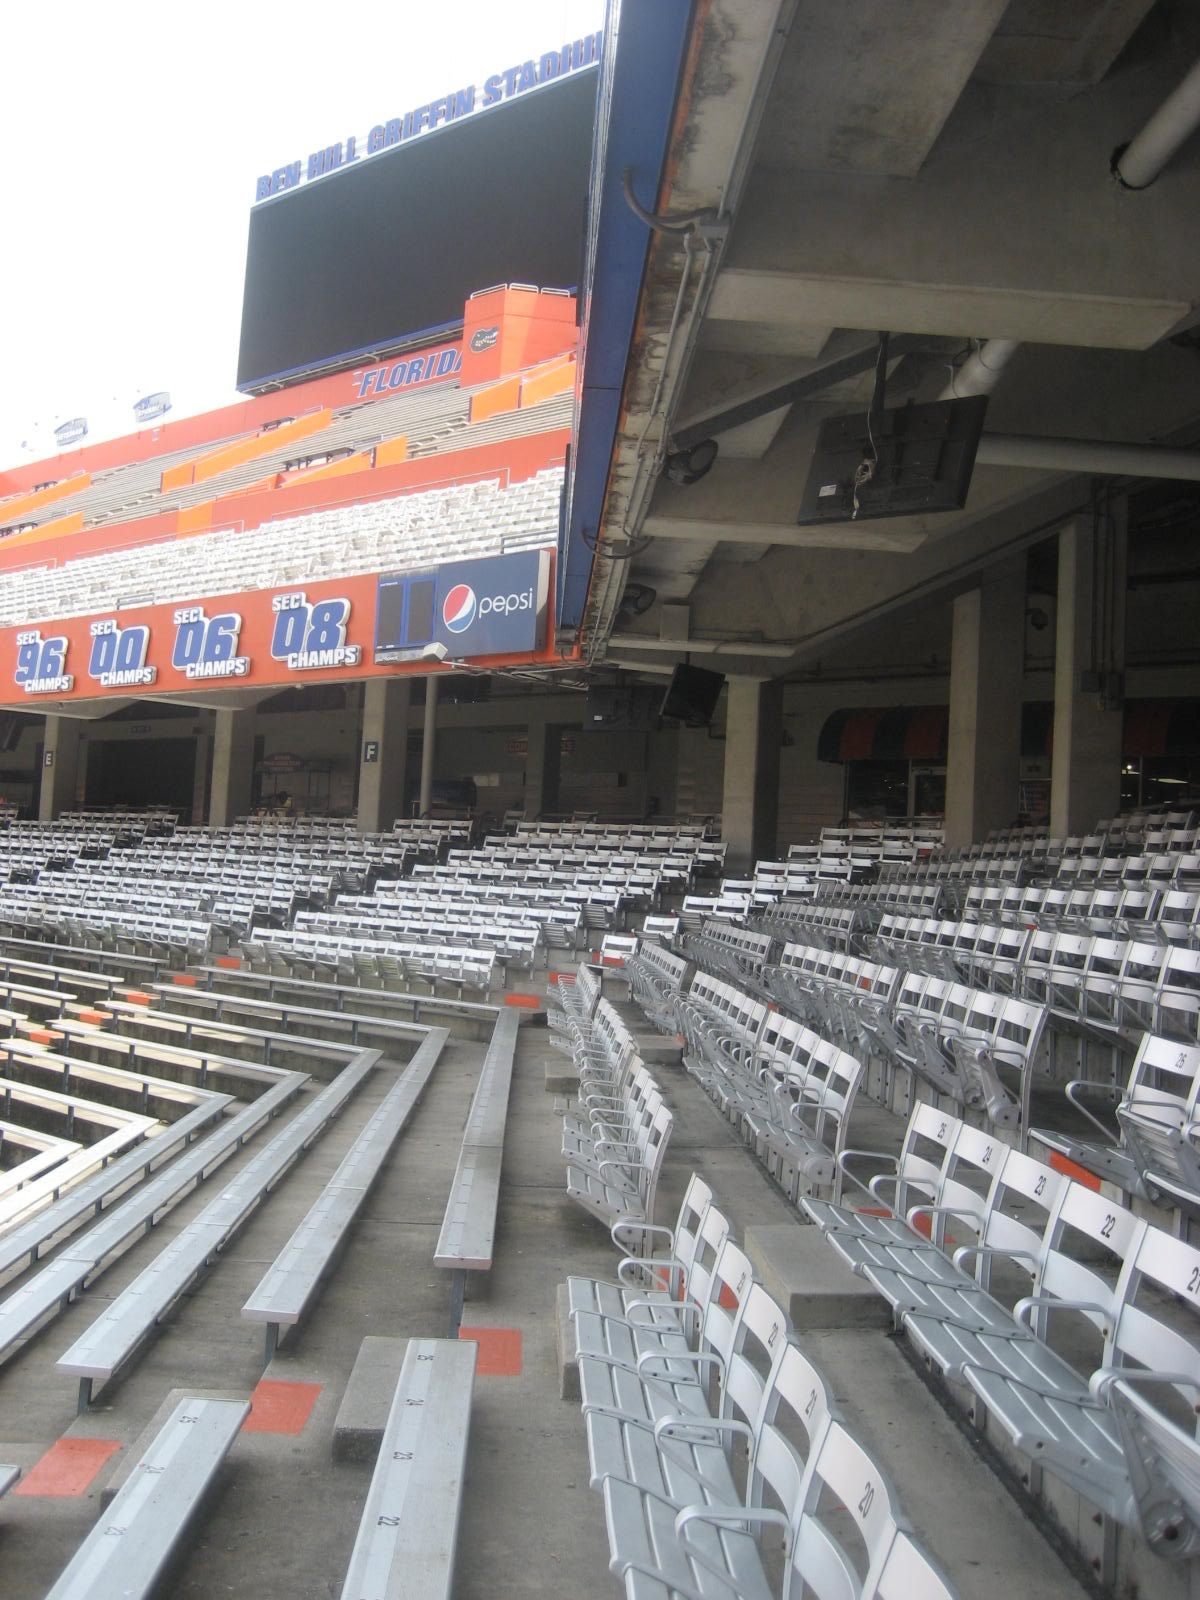 Ben Hill Griffin Stadium Seating Chart : griffin, stadium, seating, chart, Griffin, Stadium, Seating, Florida, Football, RateYourSeats.com